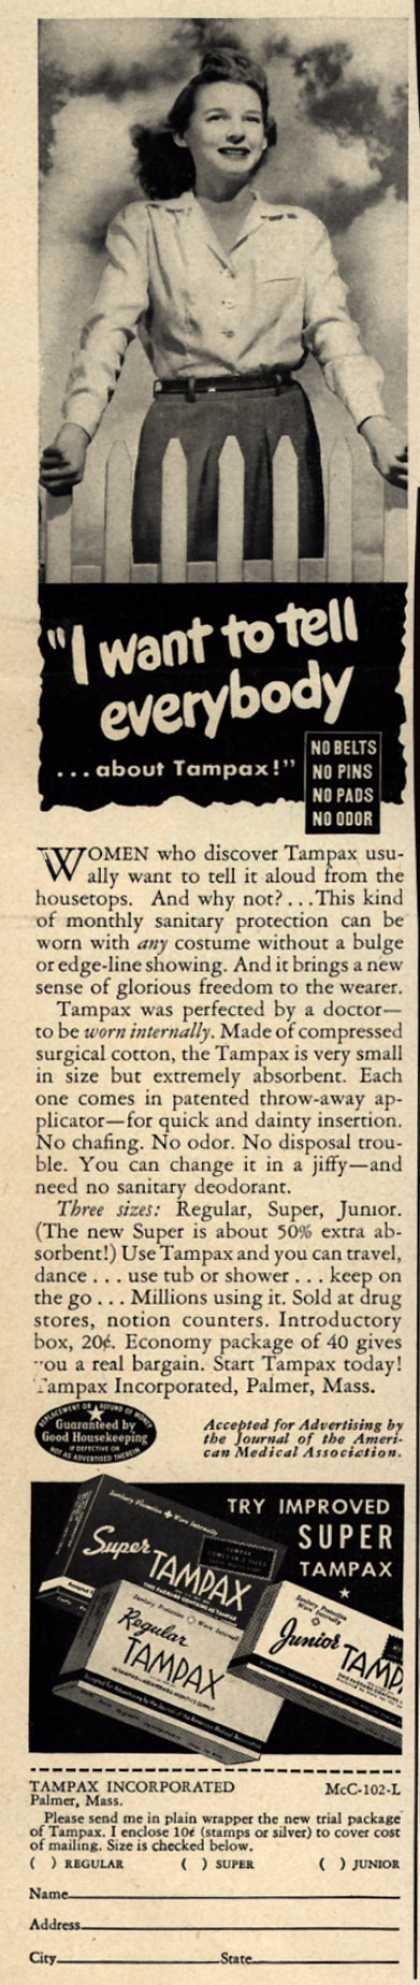 "Tampax's Tampons – ""I want to tell everybody...about Tampax!"" (1942)"